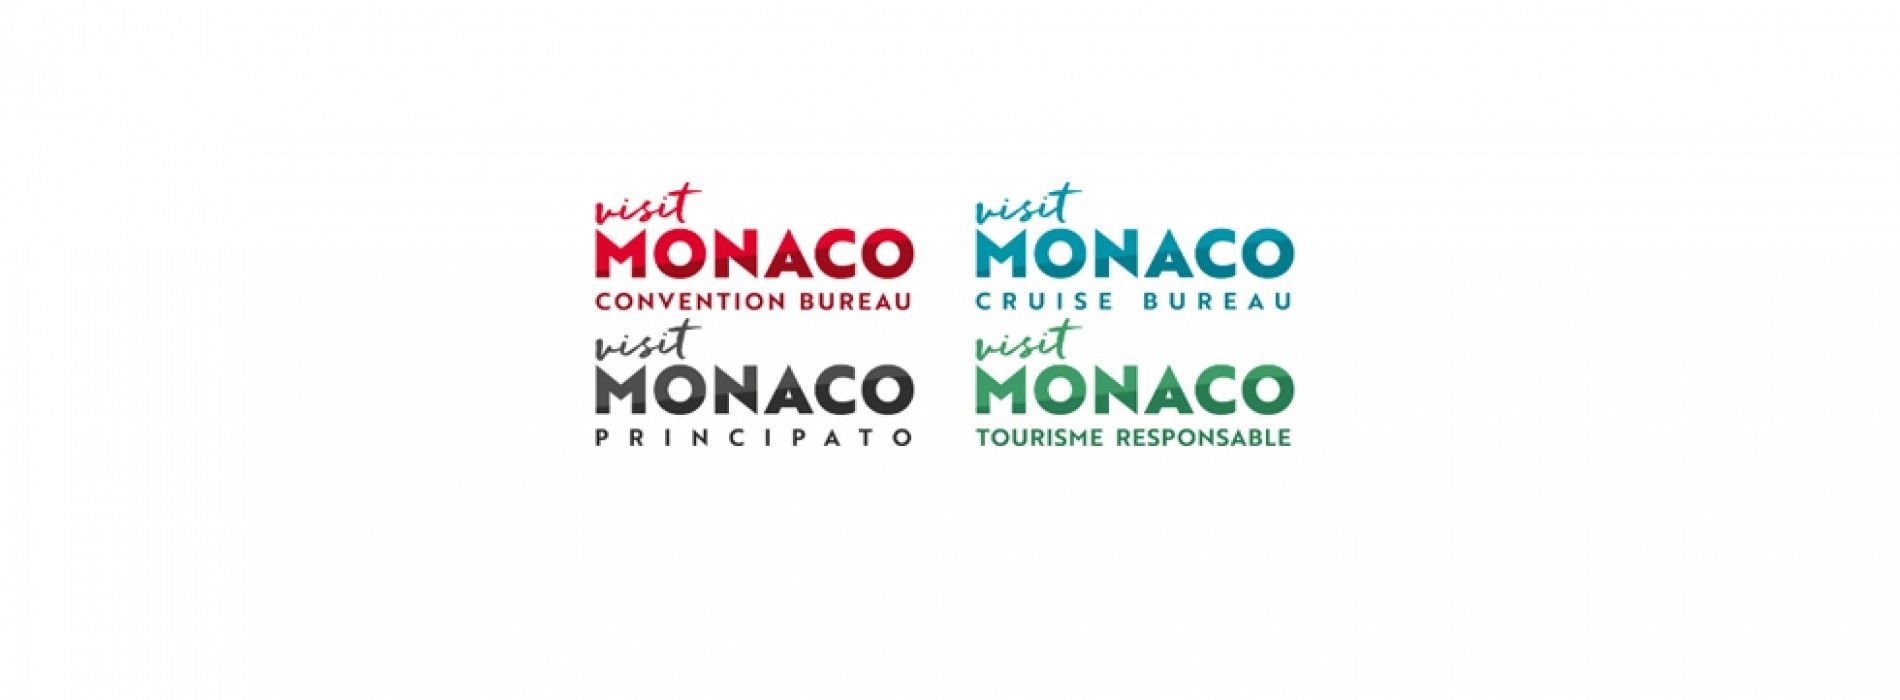 Visit Monaco launches a new global initiative 'Green is the New Glam'